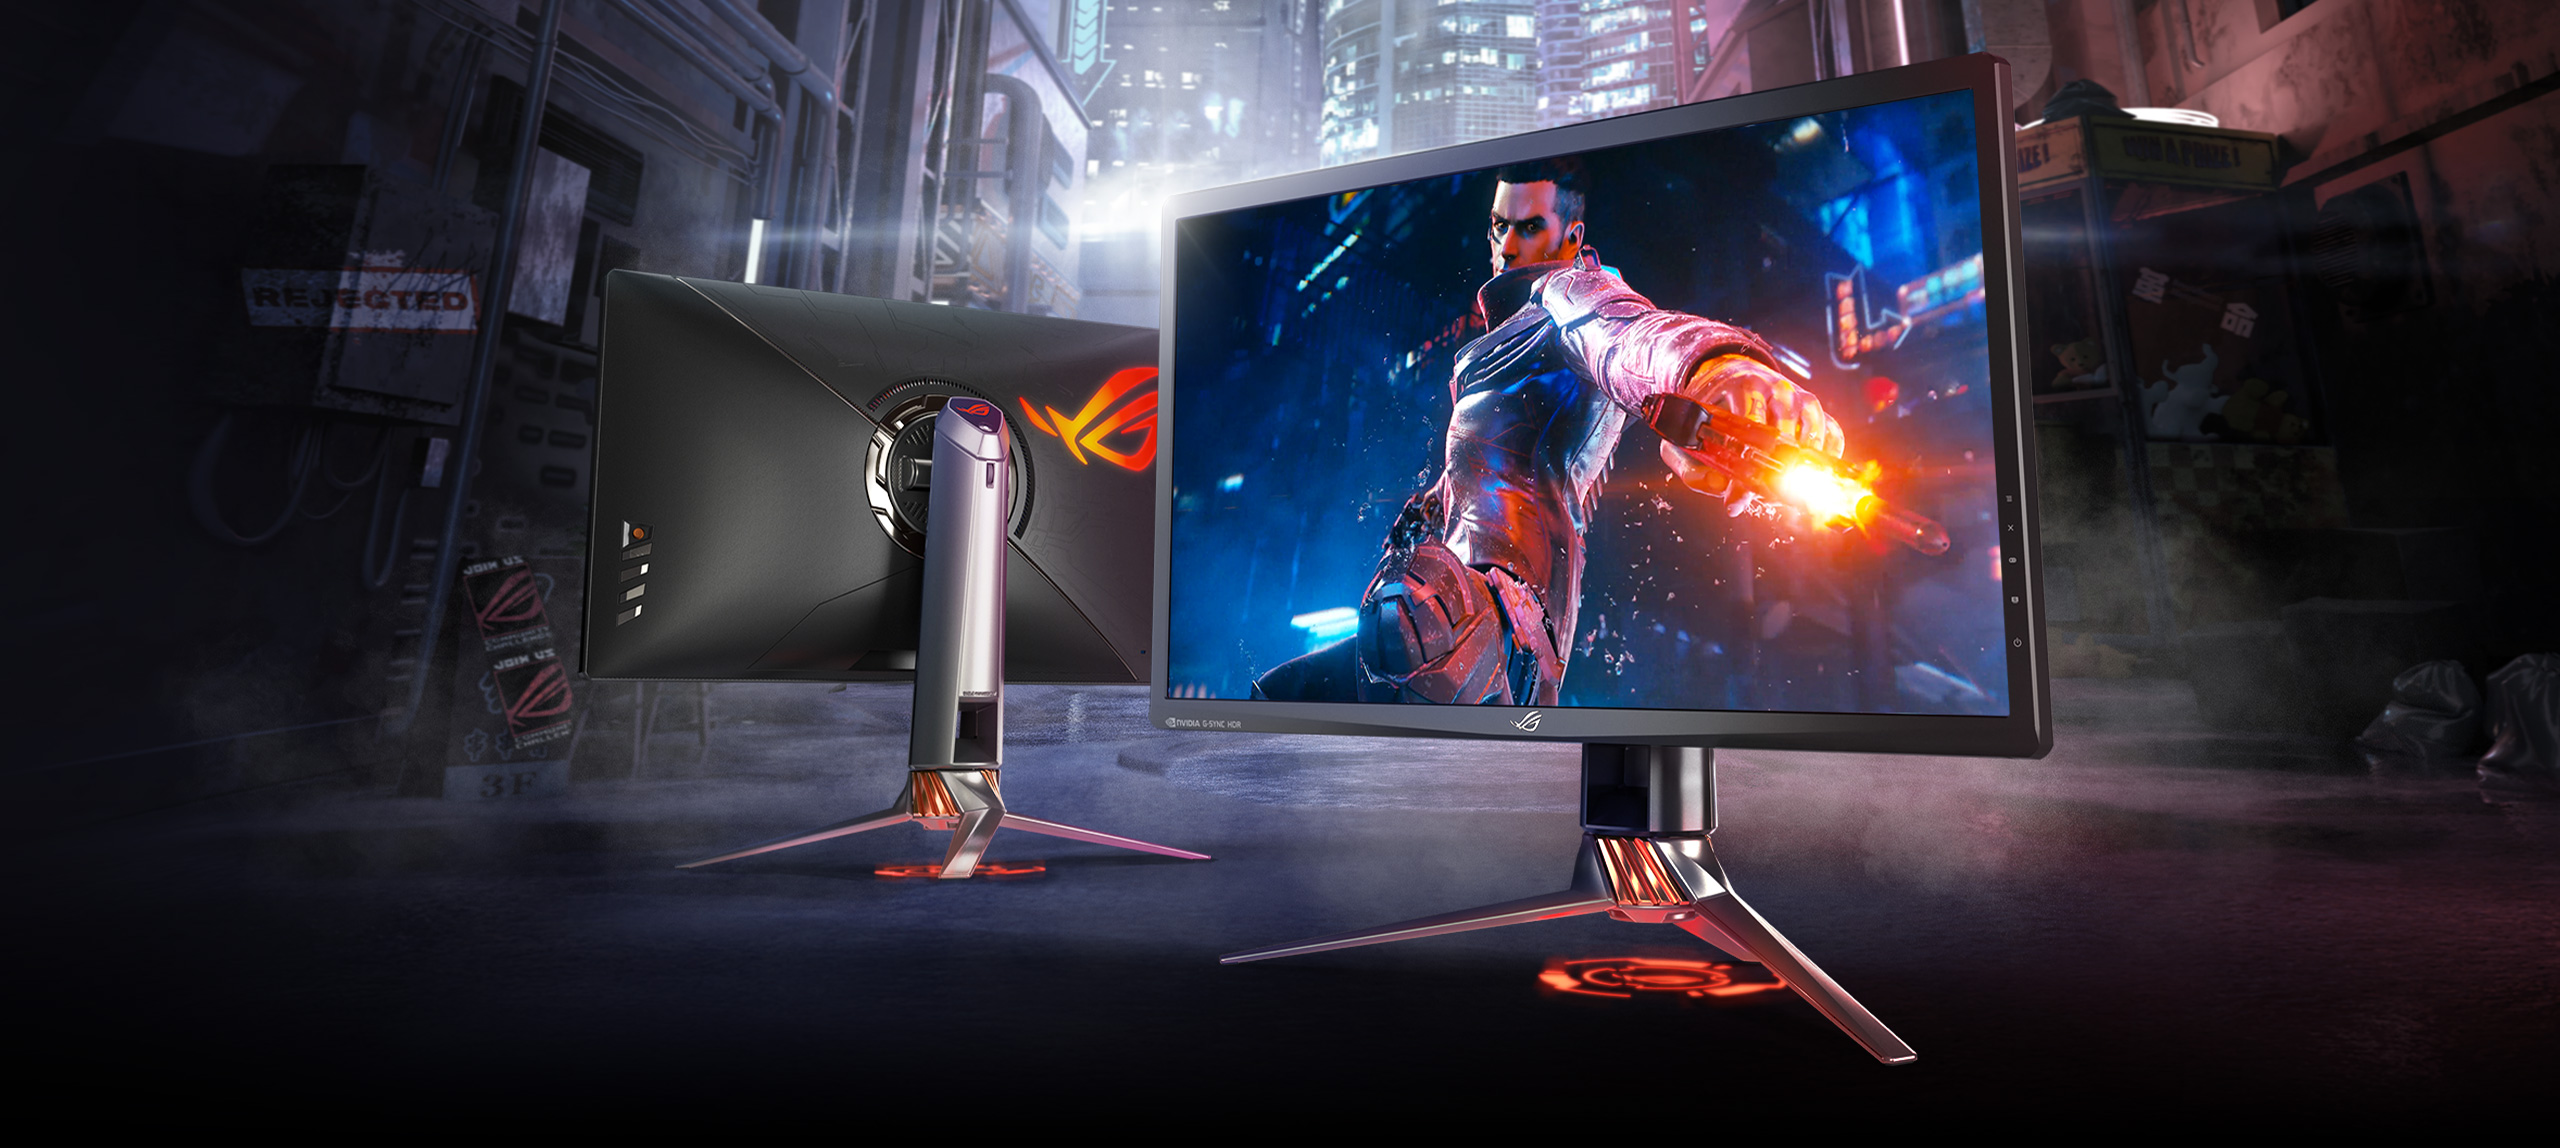 G-SYNC 4K 144hz is Here! The Asus ROG Swift PG27U | Blur Busters